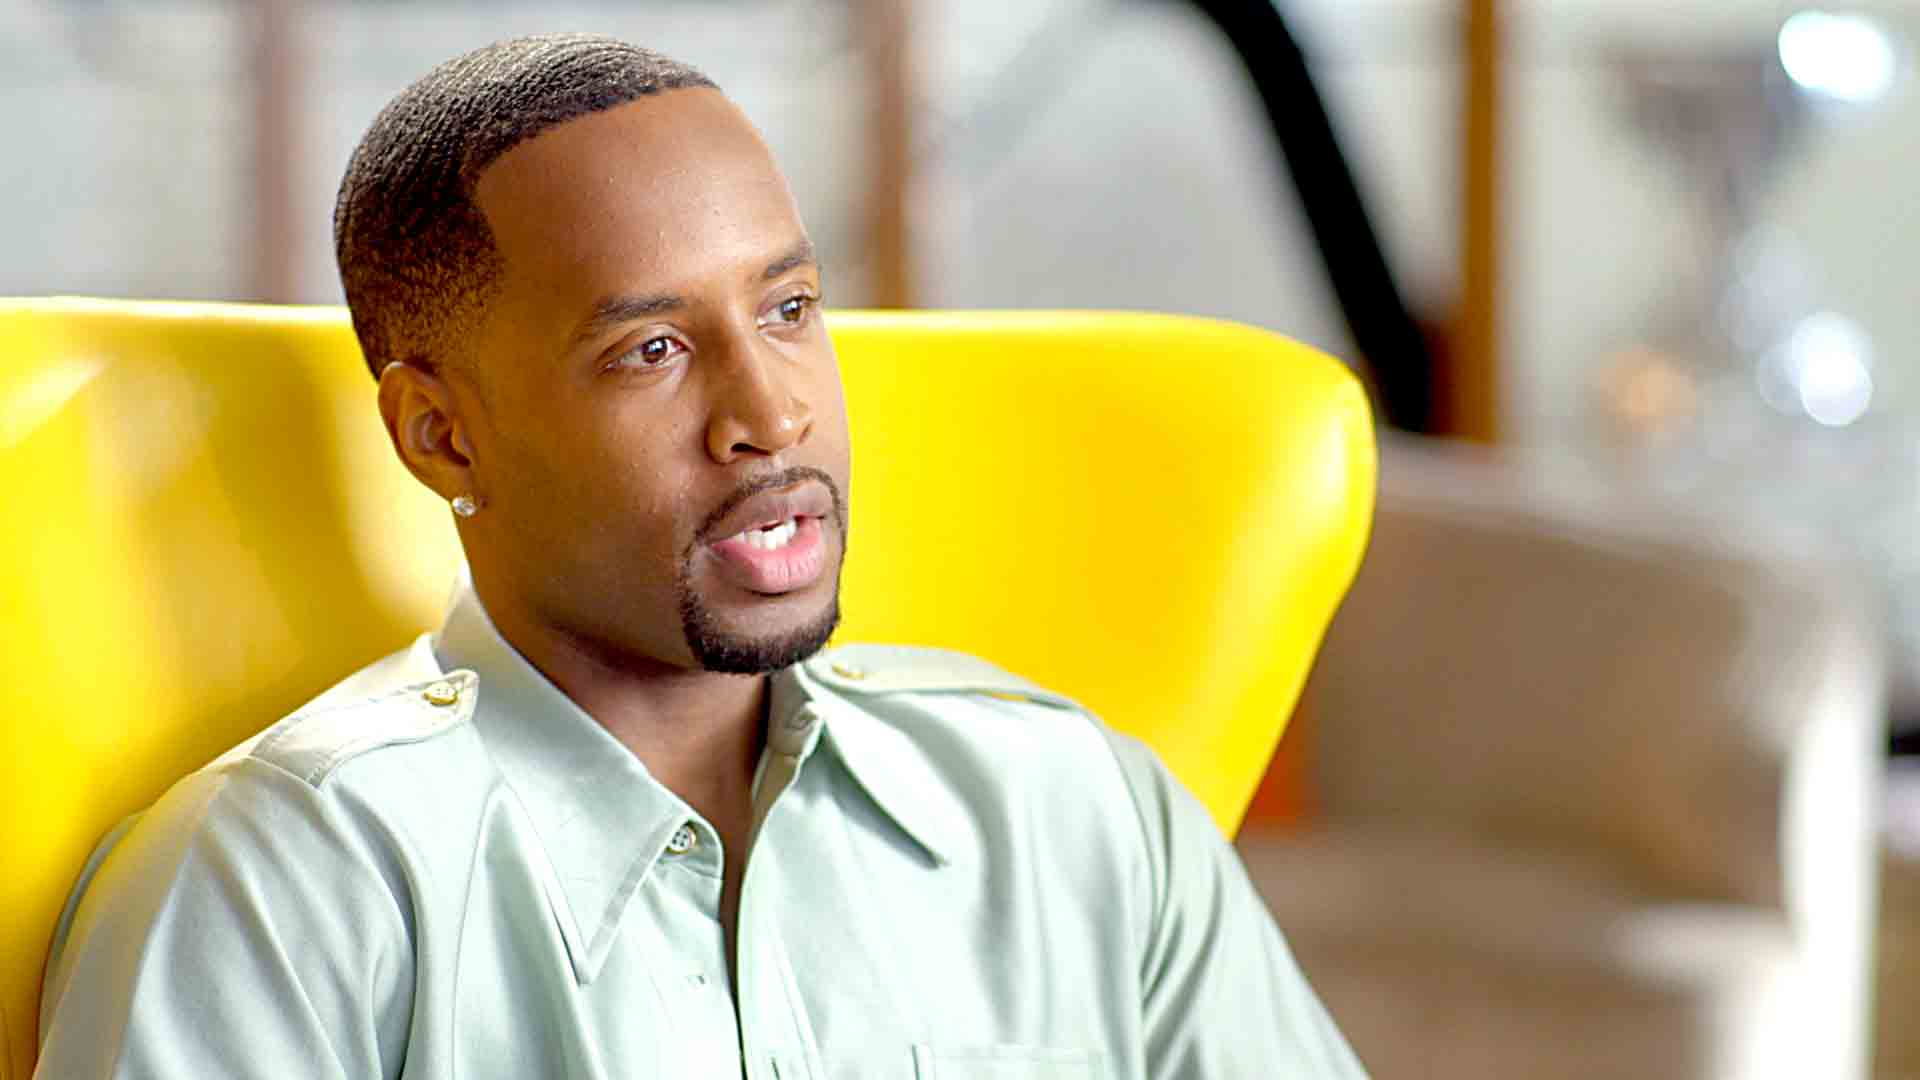 safaree-is-paralyzed-by-fear-in-this-video-and-kirk-frost-completely-understands-check-out-what-hes-trying-to-do